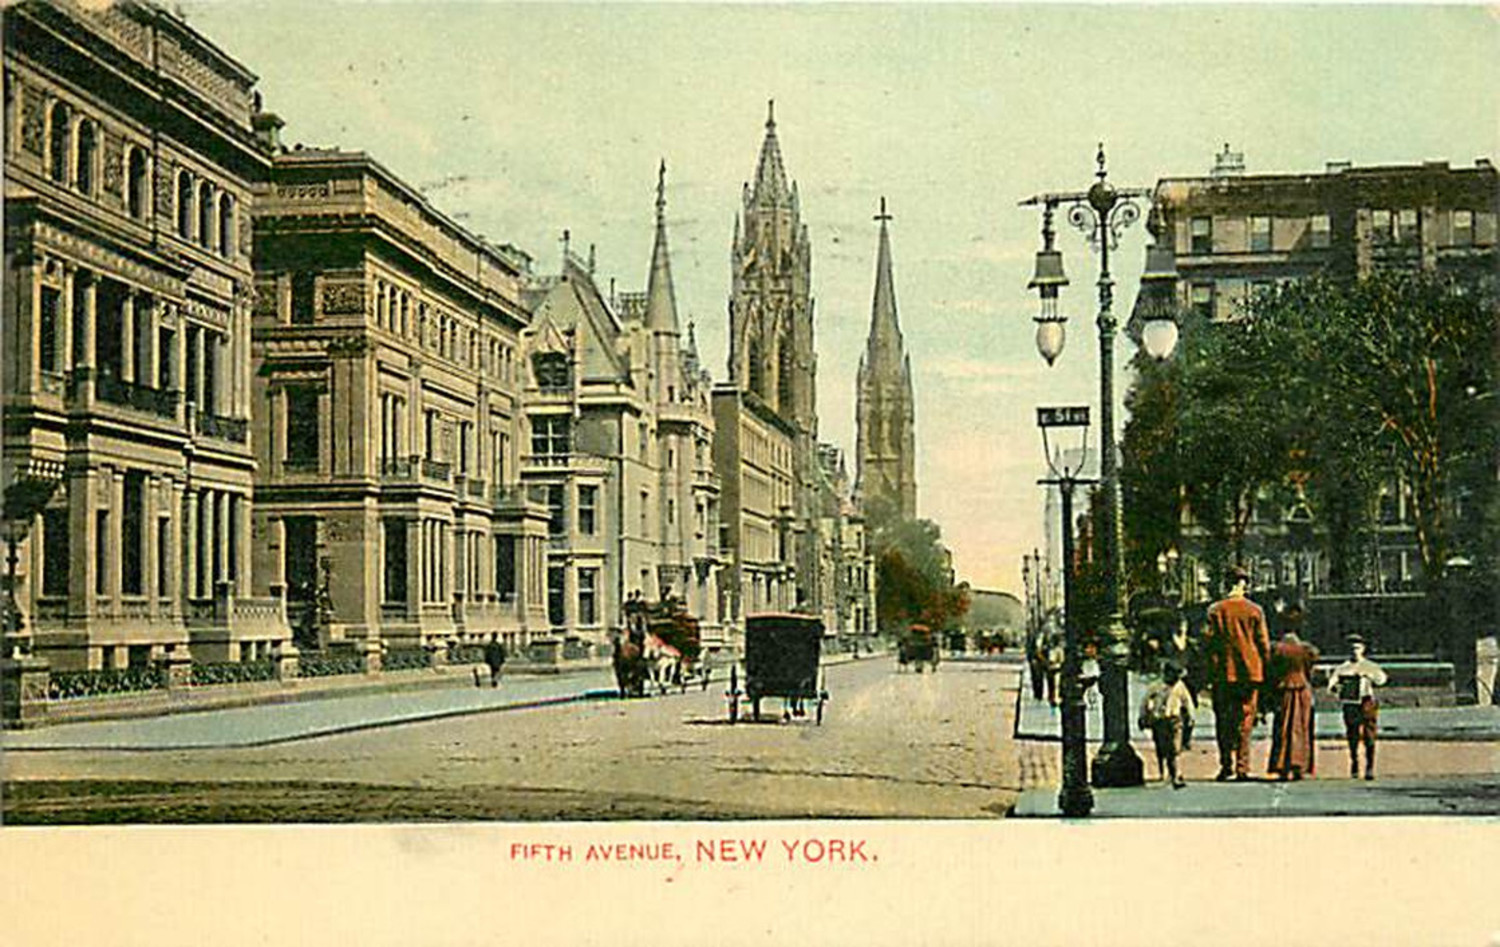 Fifth Avenue looking north from 51st Street around 1900. A newsboy stands on the corner as a couple passes by on a mostly deserted thoroughfare. The triple palaces of the Vanderbilt's stand between 51st and 52nd Streets and the northwest corner of 52nd Street. The first two mansions were  given to his daughters by William Henry Vanderbilt, the third on 52nd Street was the home of William K. Vanderbilt. By 1945 all three mansions were gone; victims of changing tastes, expenses, and the rising value of real estate. The churches in the background are St. Thomas Episcopal Church and the Fifth Avenue Presbyterian Church.